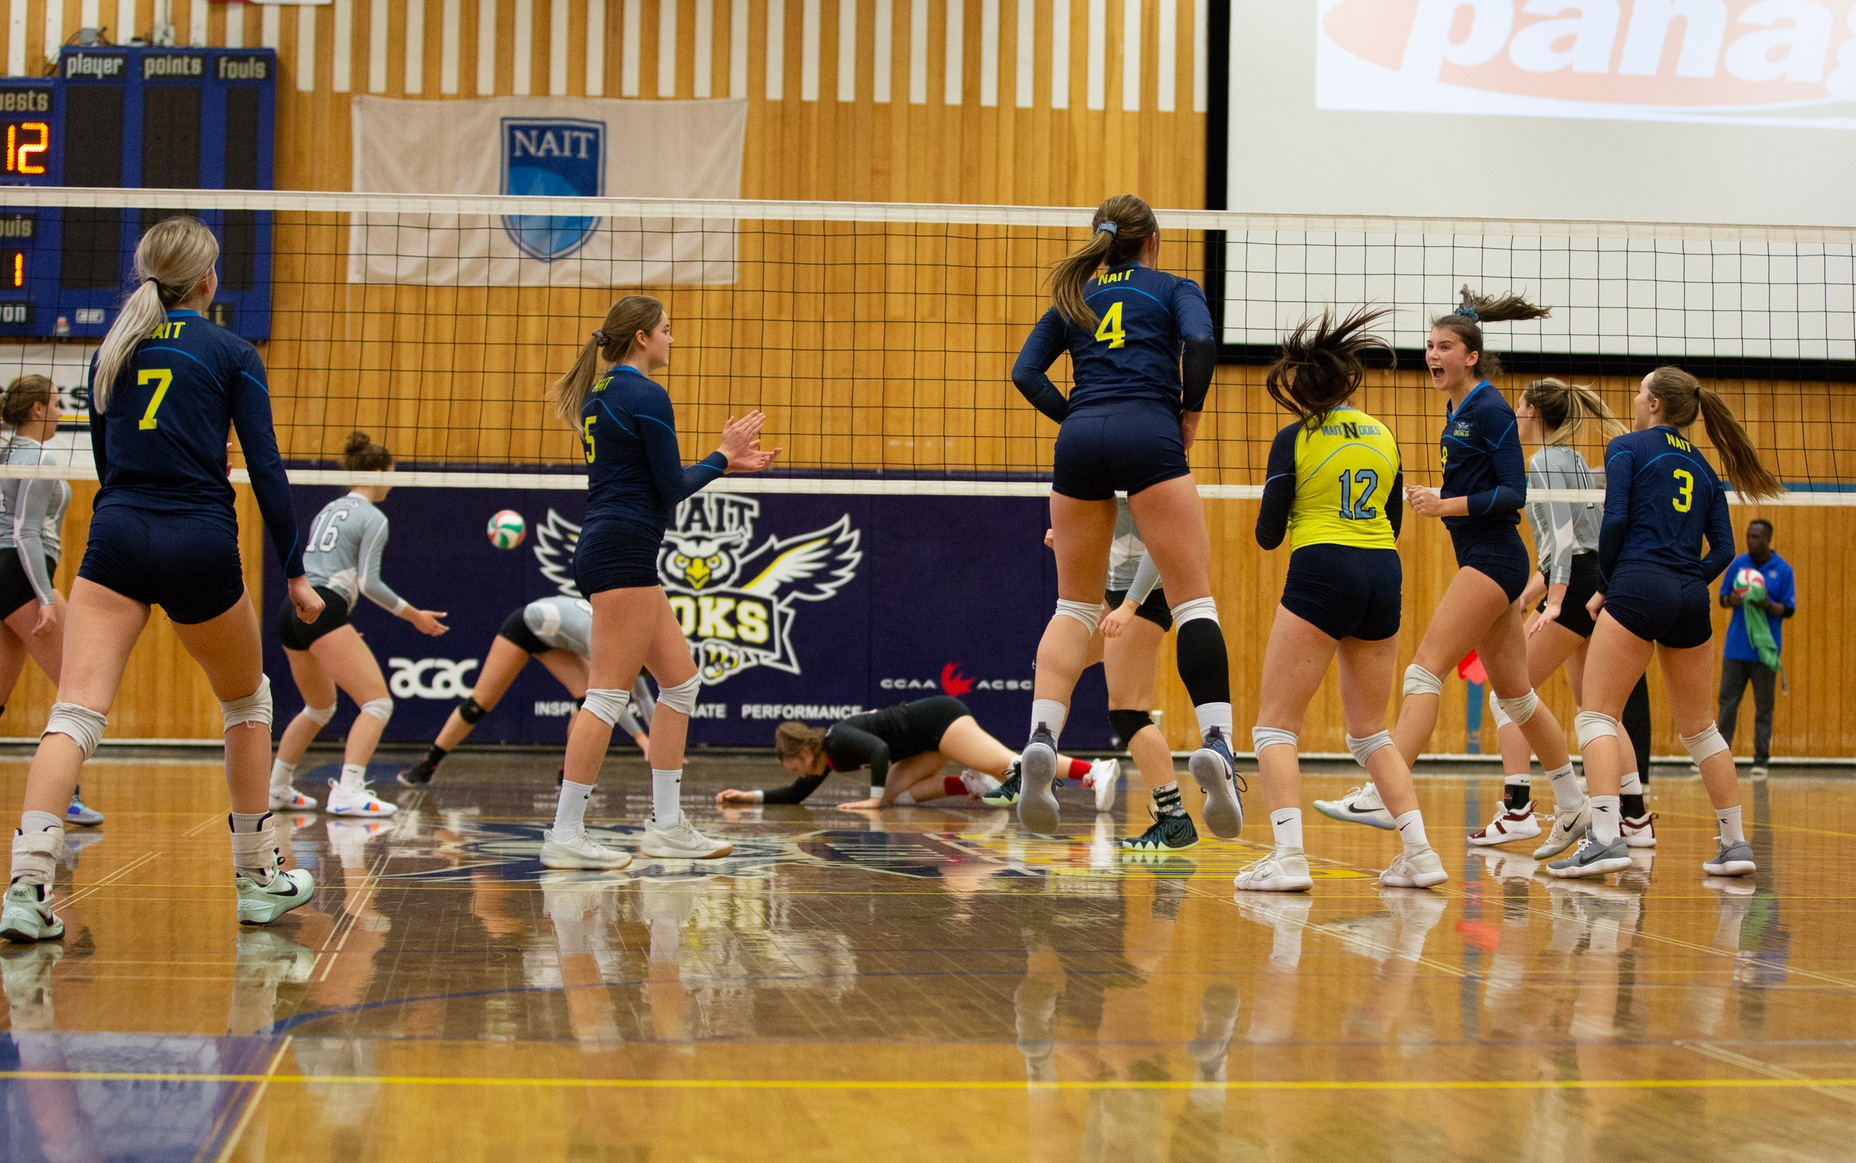 Ooks WVB Lose 3-0 To Eagles